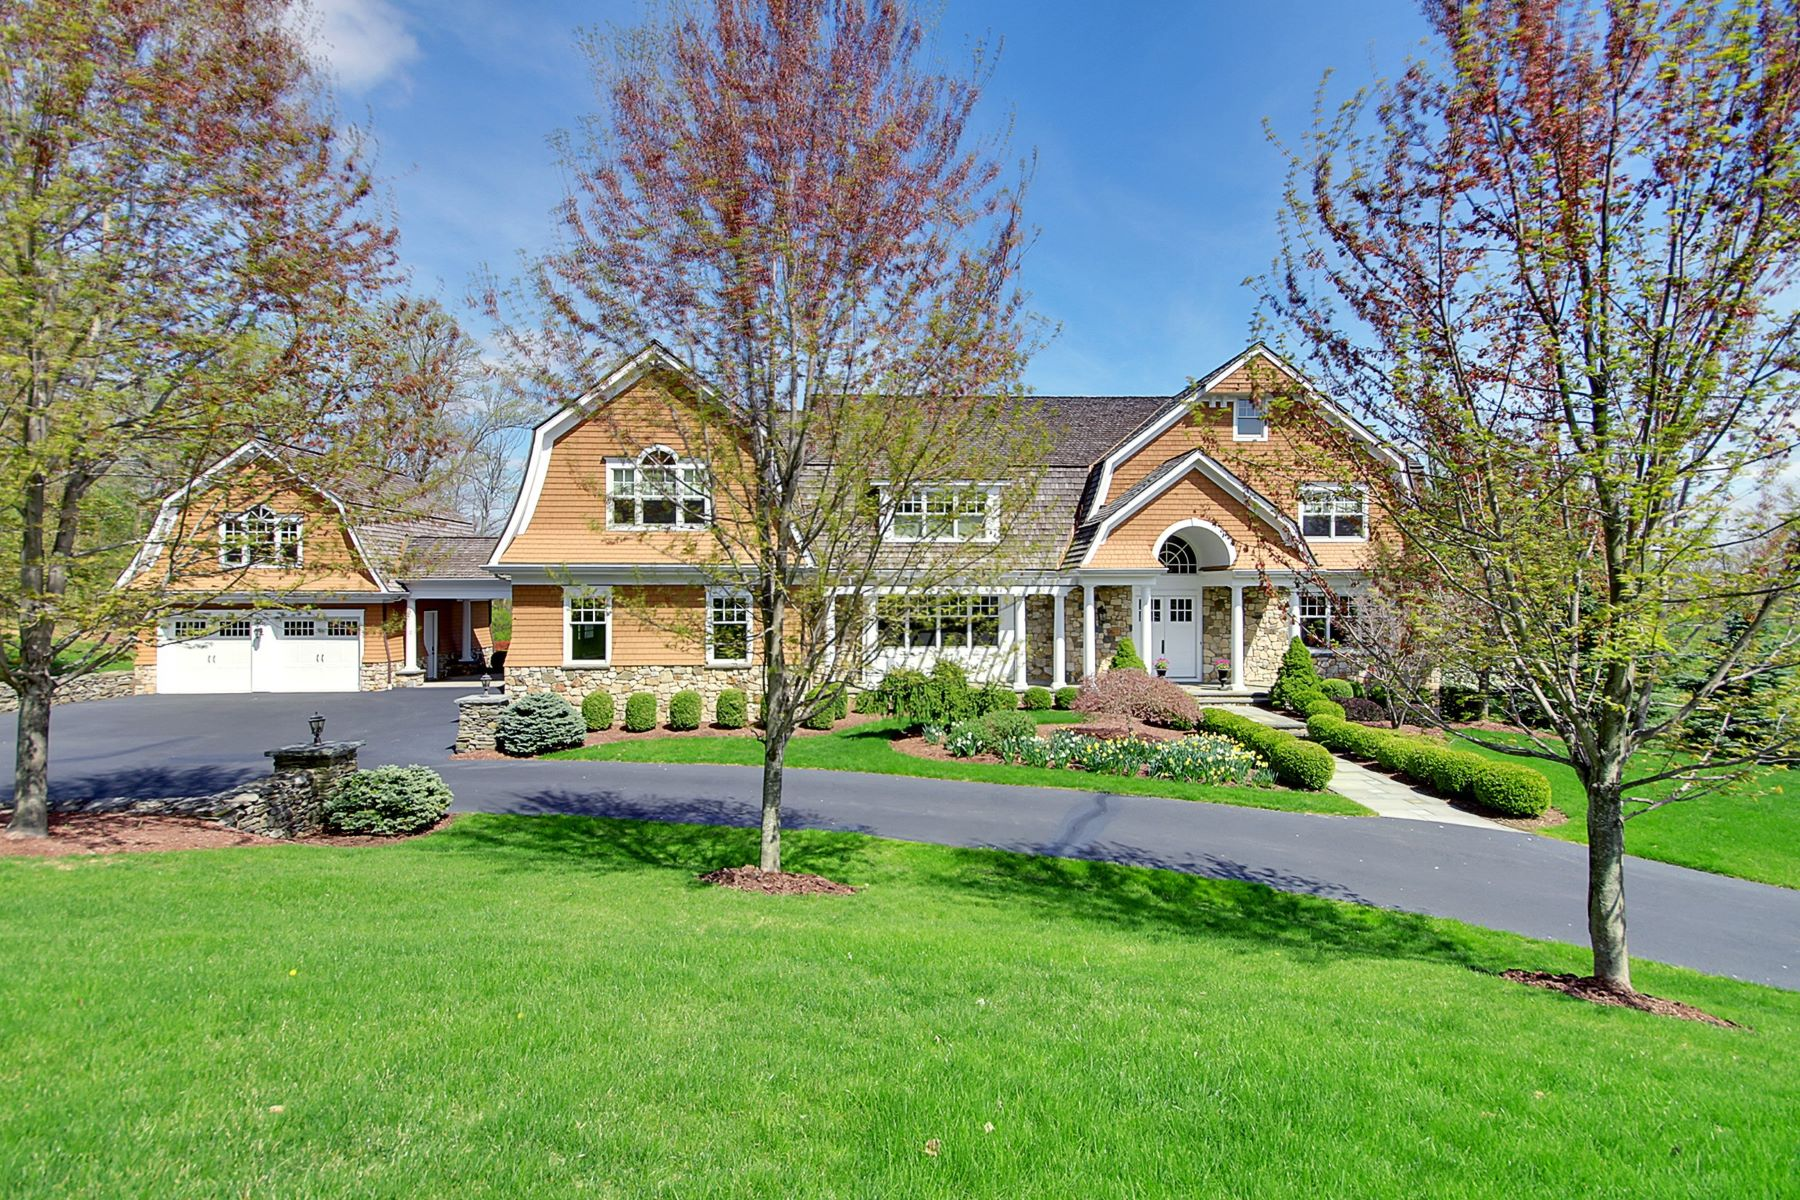 Single Family Home for Sale at Grand. Custom. Spacious. 55 Wisteria Way Basking Ridge, 07920 United States